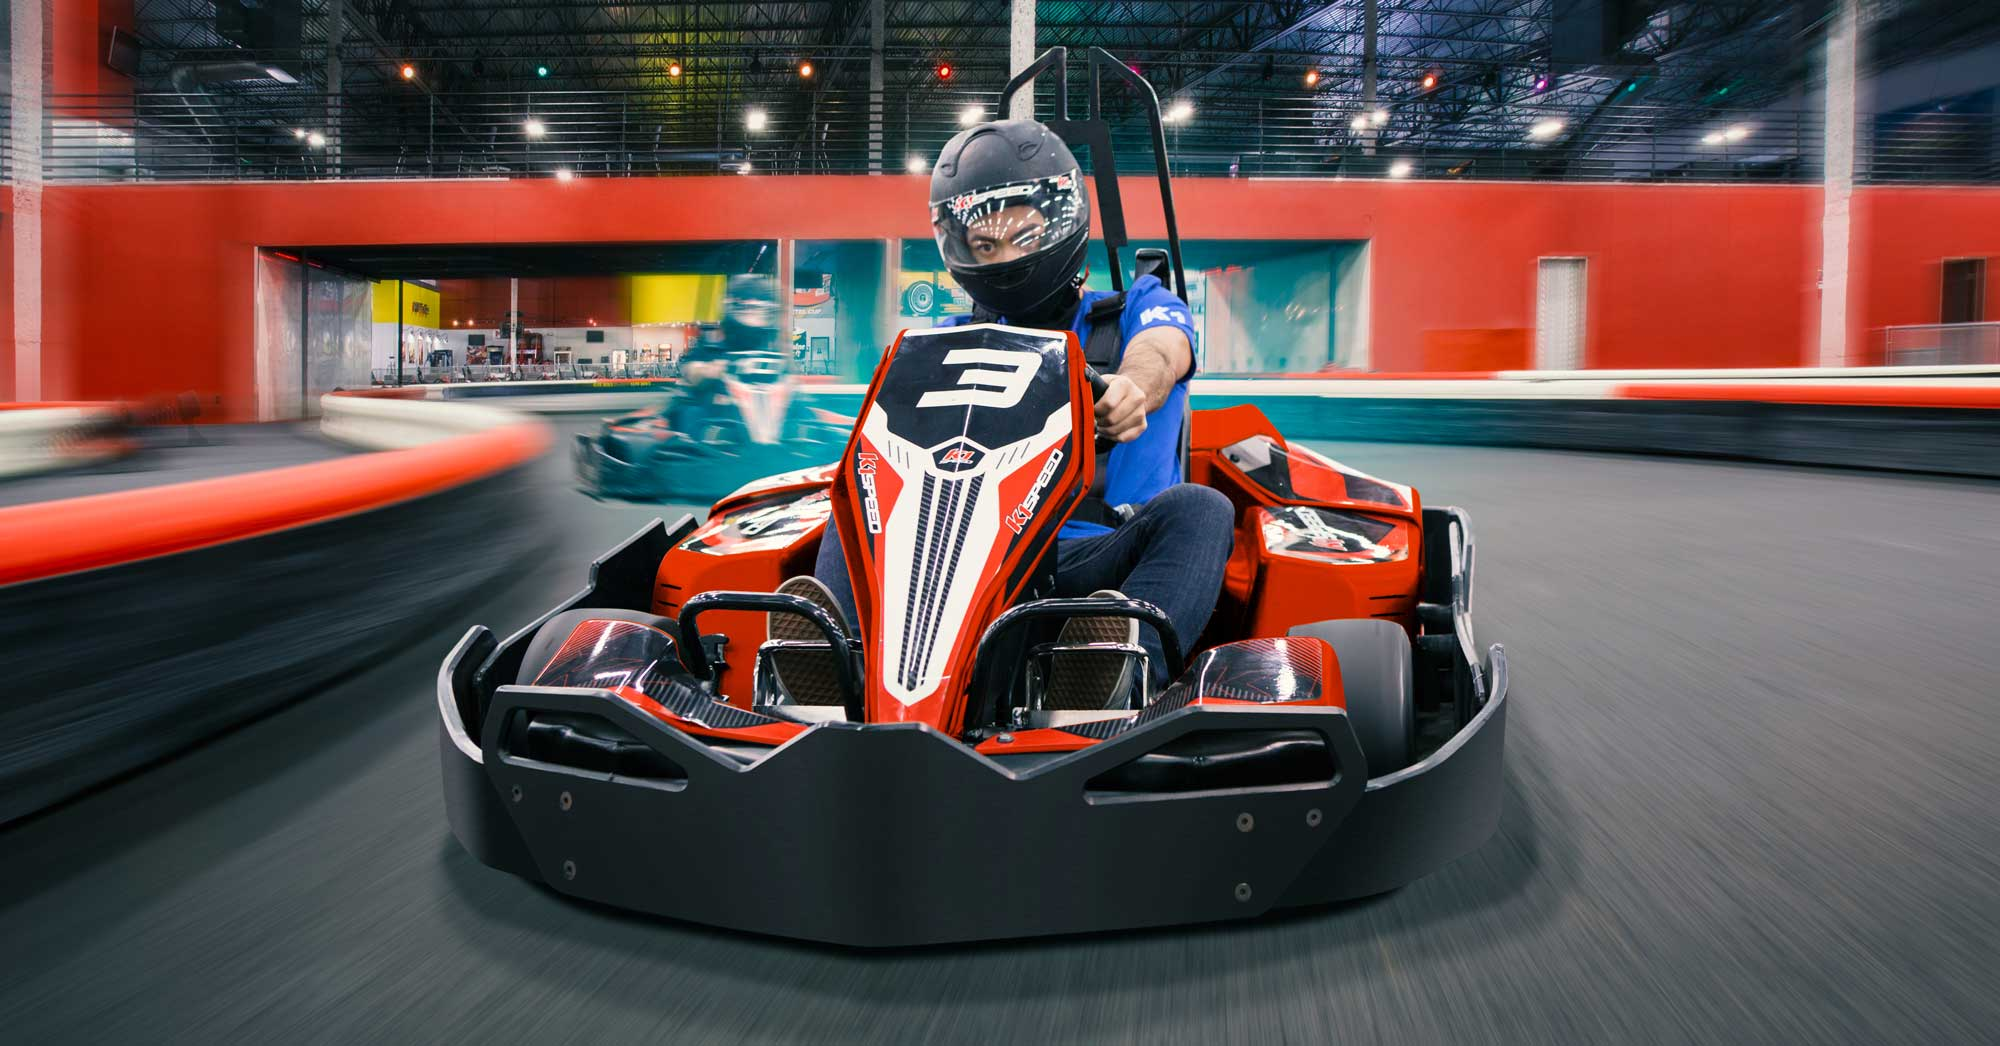 EXPERIENCE THE FASTEST INDOOR KARTING IN ATLANTA